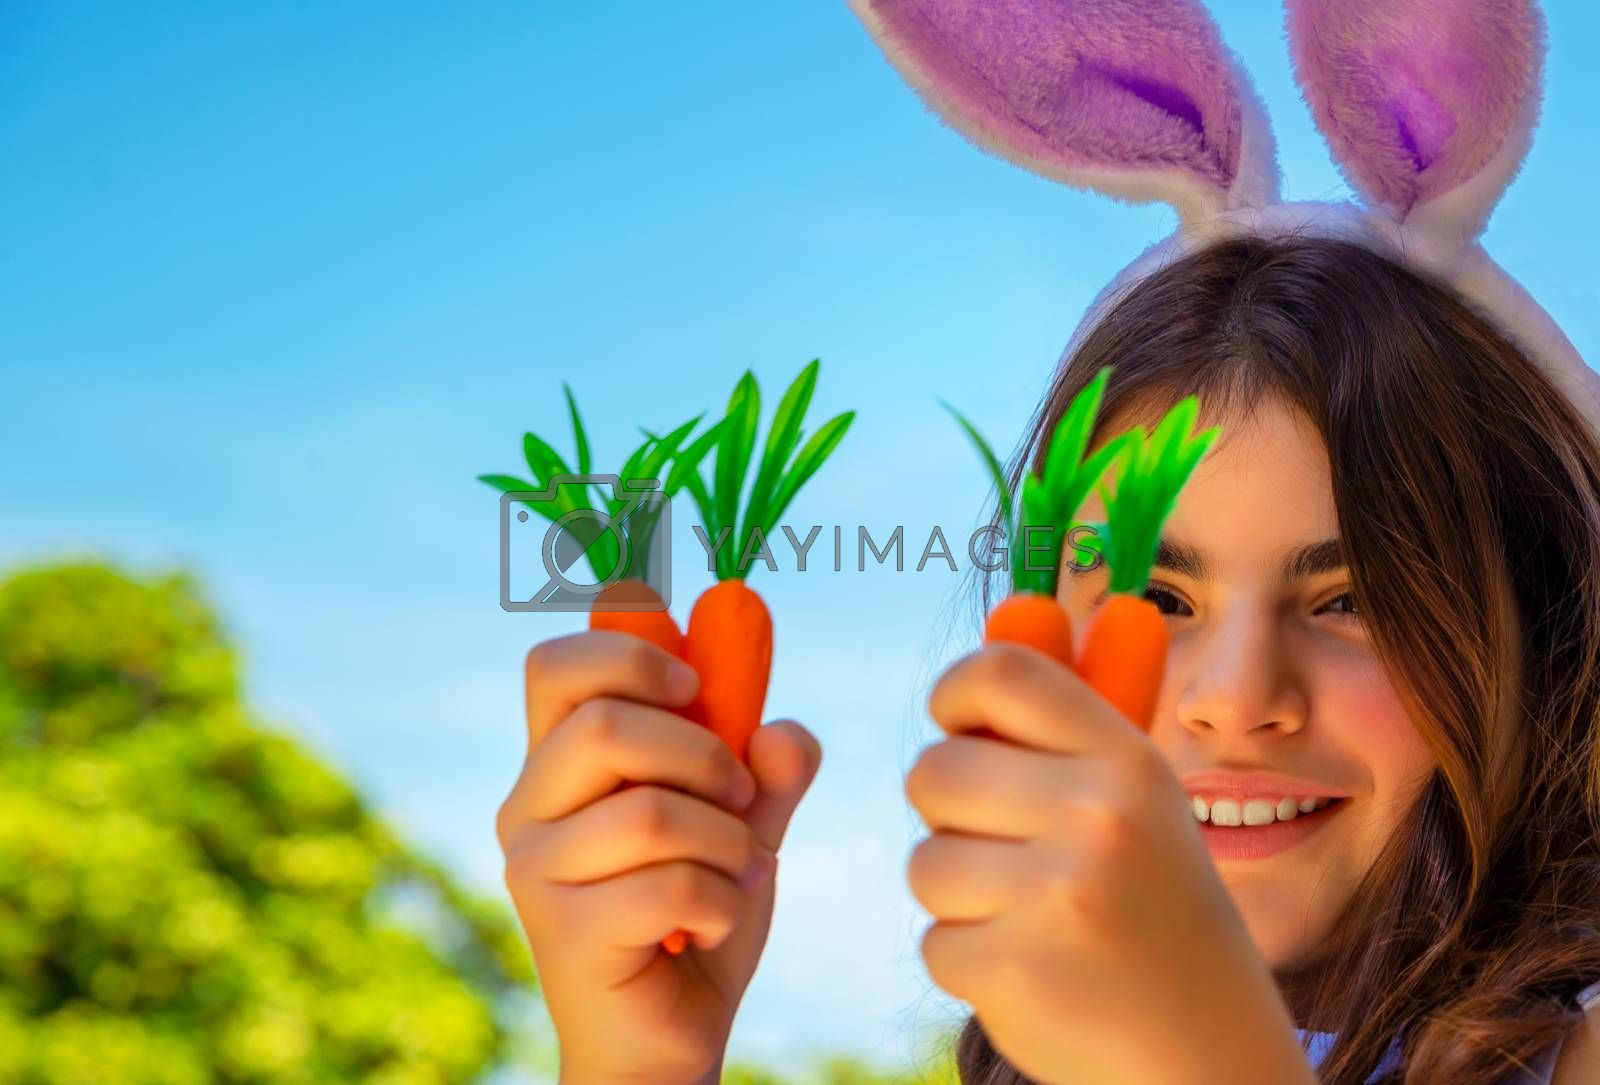 Portrait of a cute little bunny girl with carrots enjoying Easter, having fun gardening in the yard on a sunny day, traditional food for Easter celebration, happy spring holiday